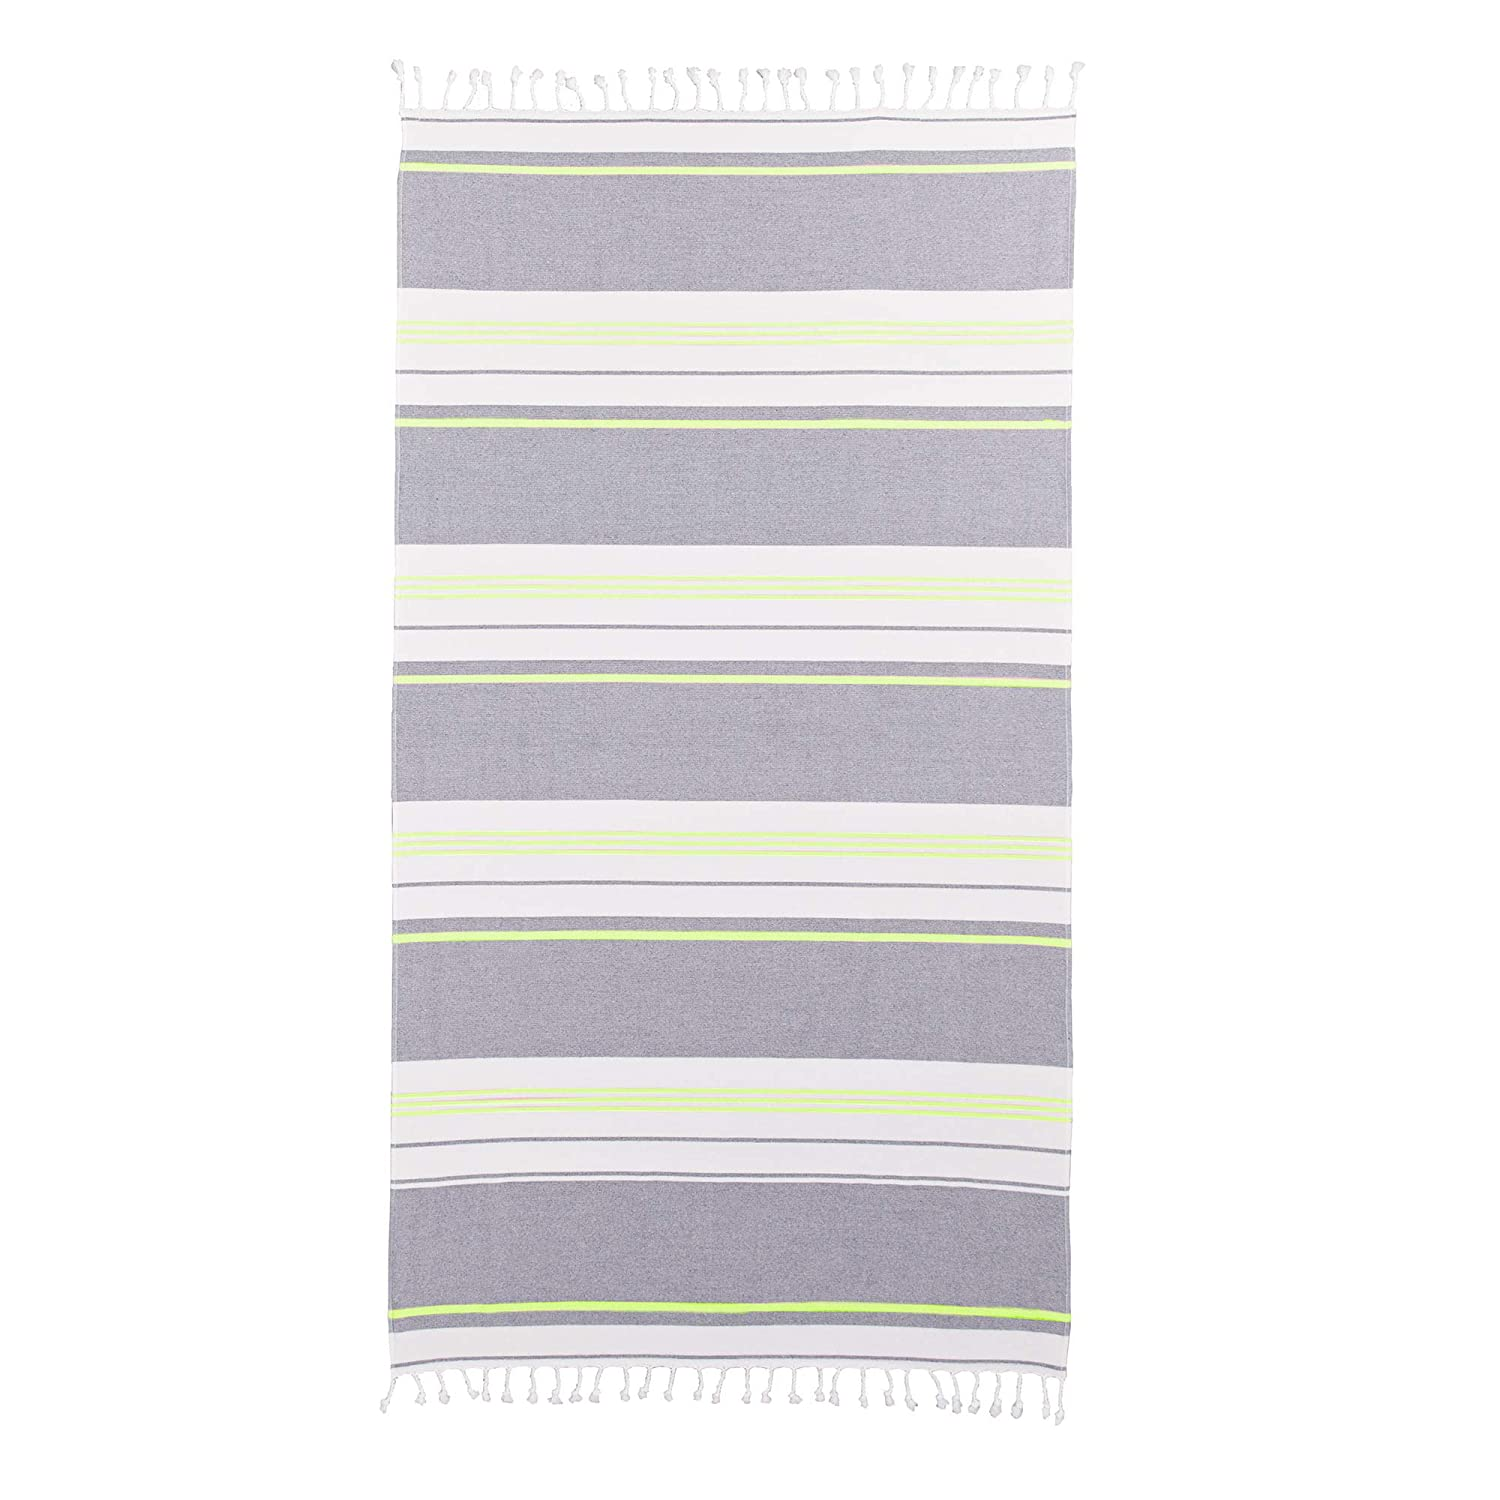 The Splendid Home Turkish Yarn Dyed Stripe Beach Towel travel product recommended by Jules Barker on Lifney.